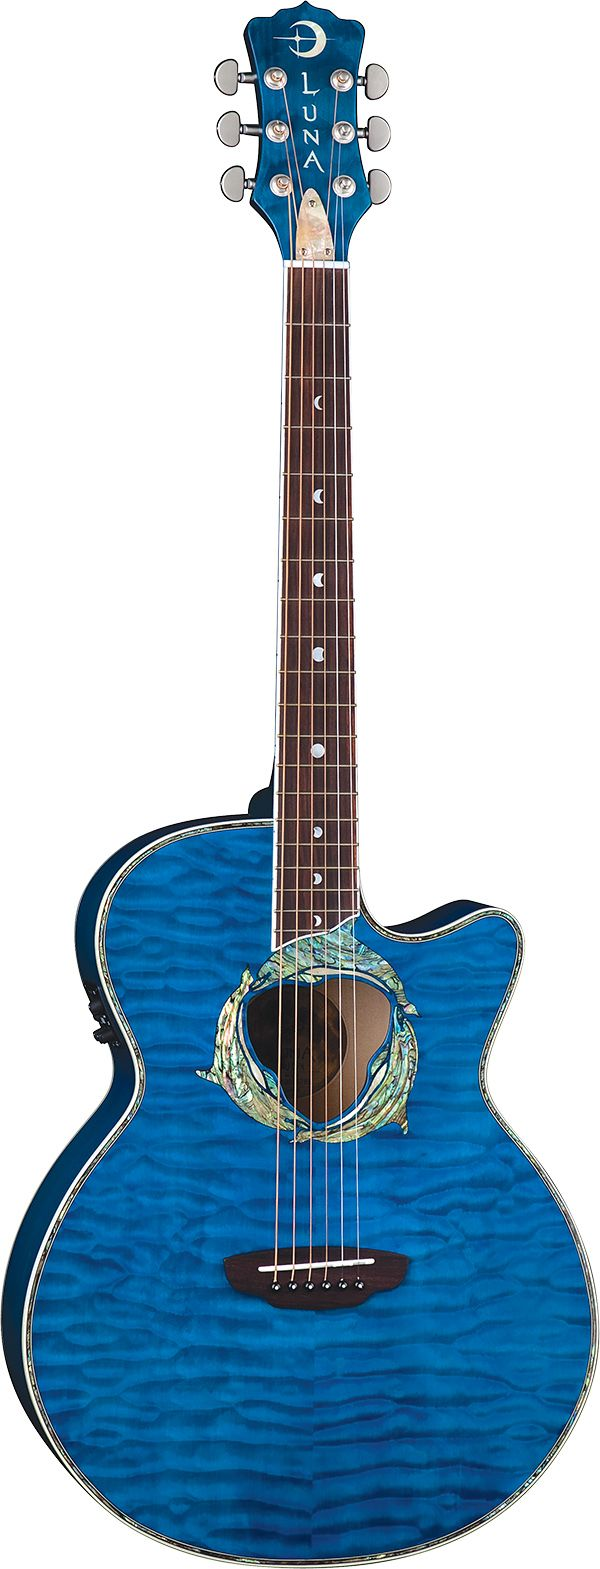 Luna Guitars - Fauna Dolphin acoustic electric